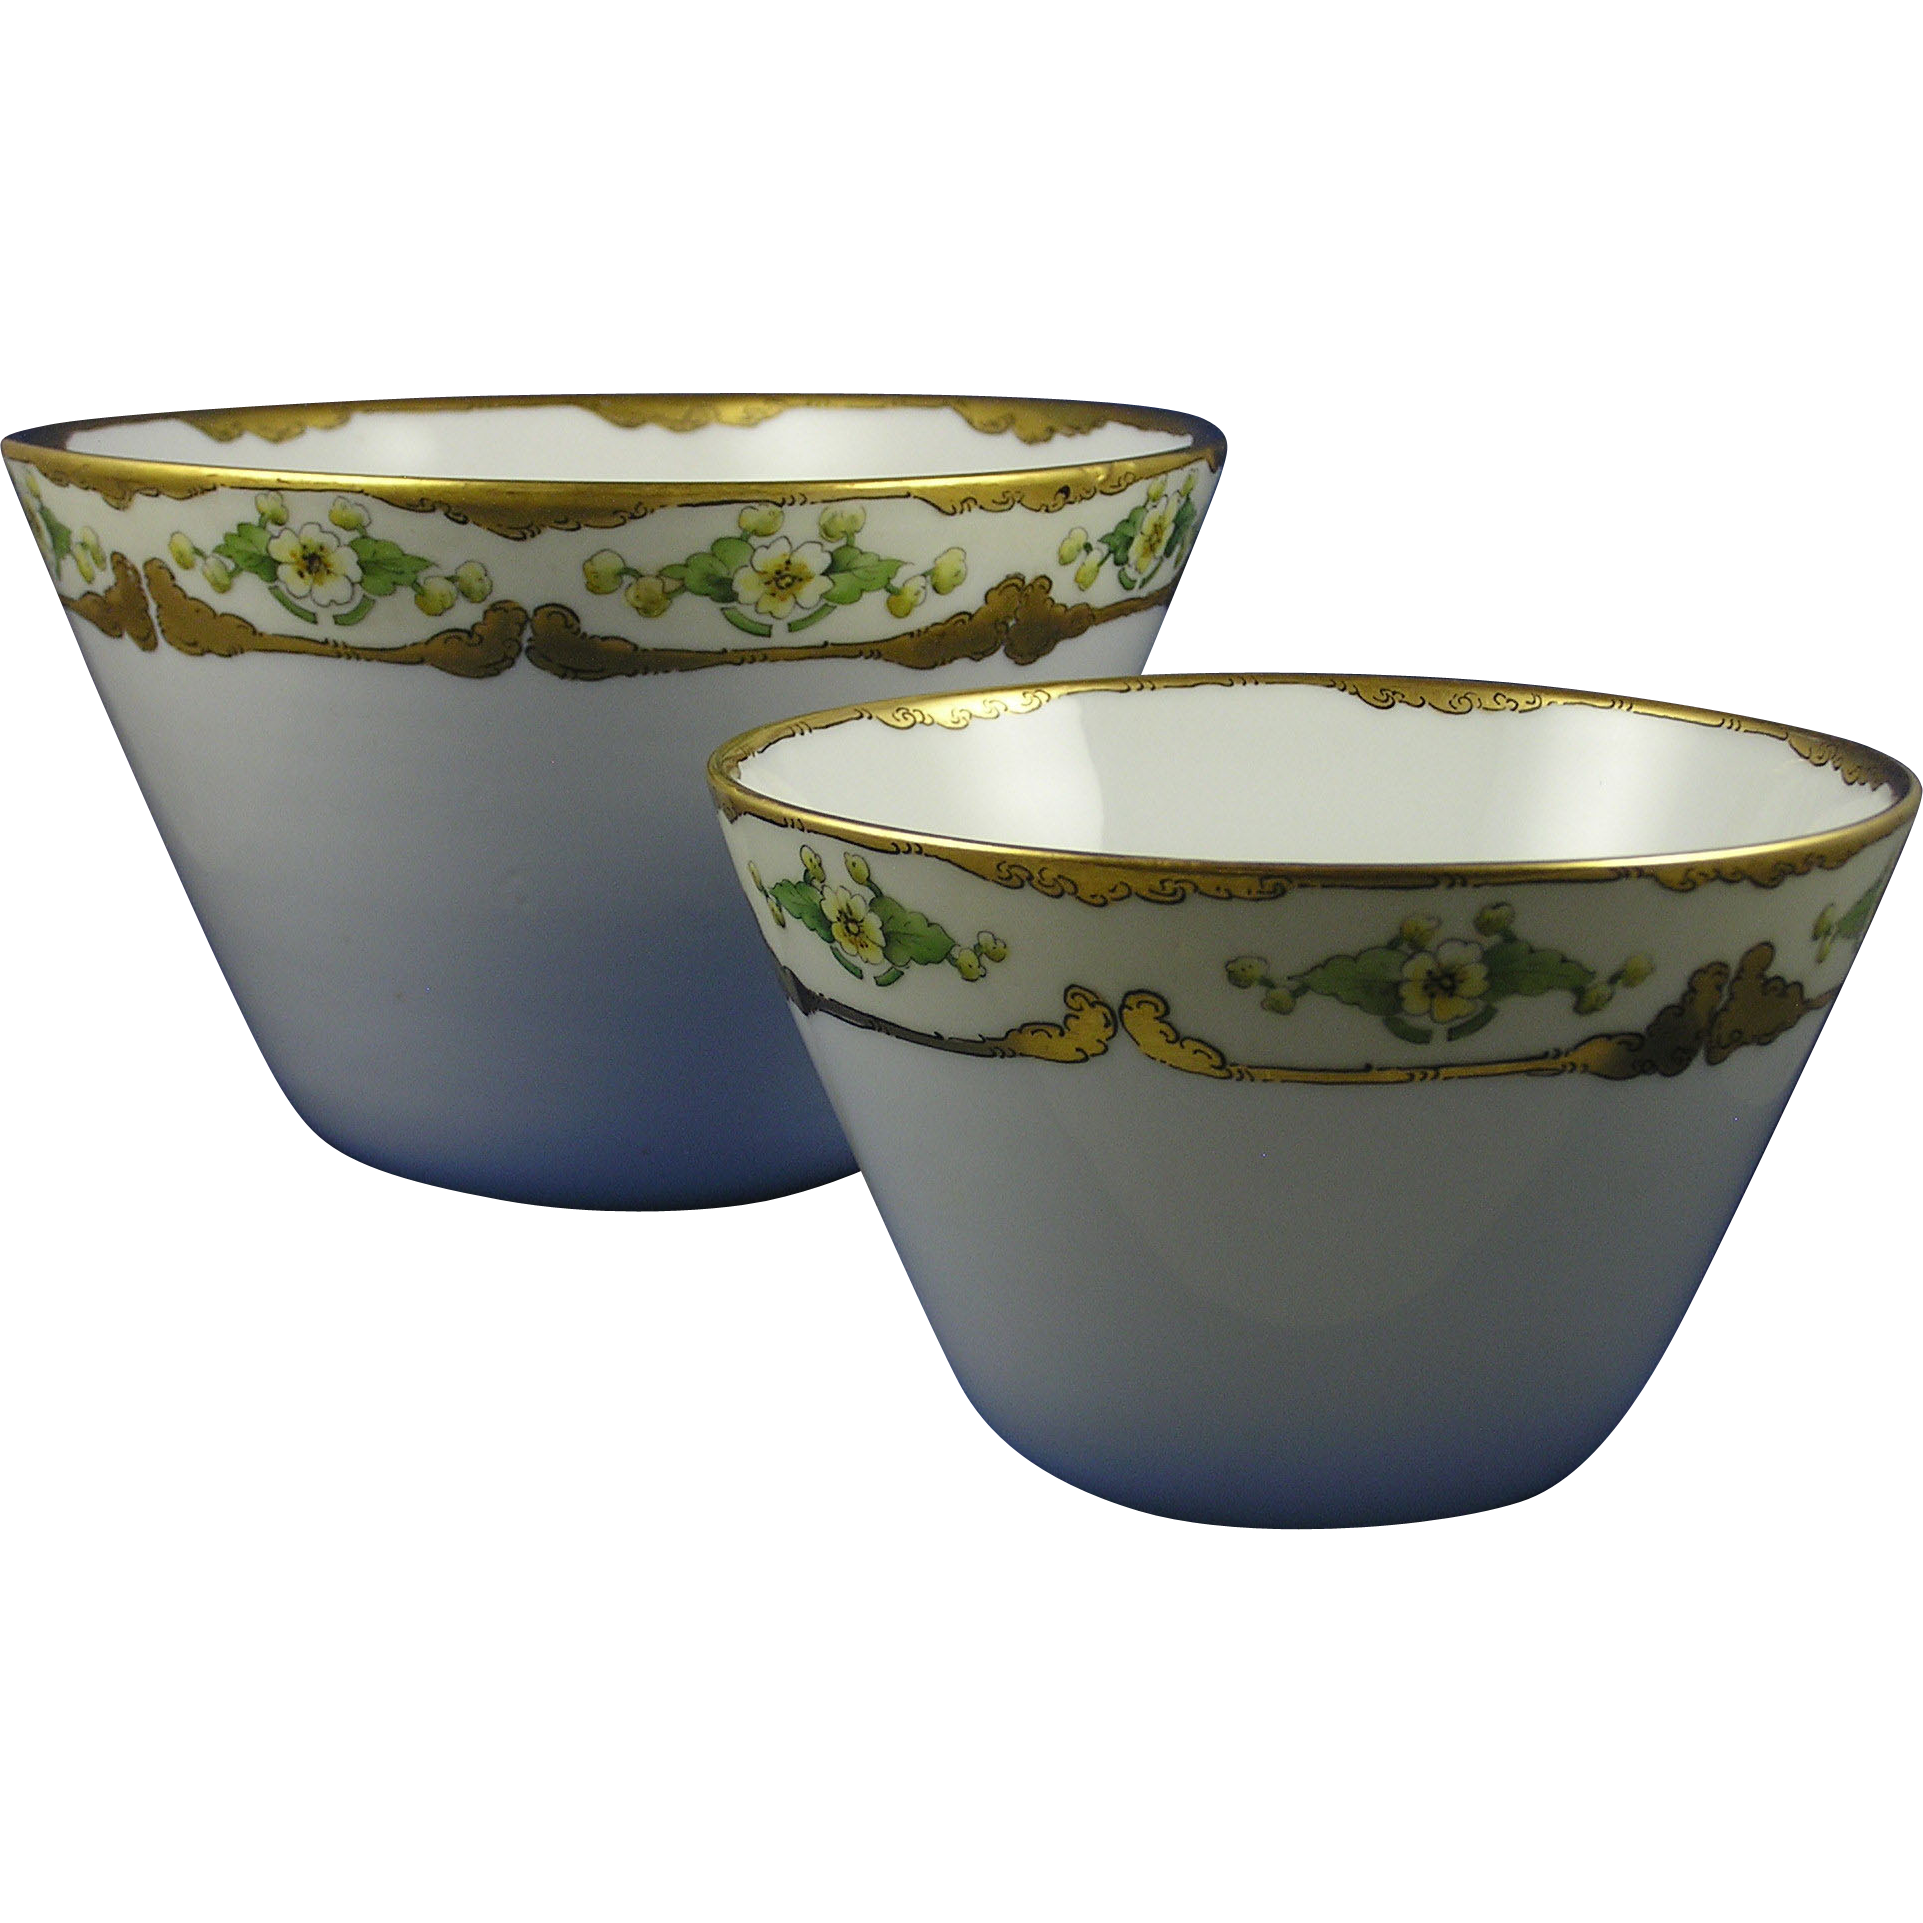 Favorite Bavaria Arts & Crafts Floral Design Bowl Set (c.1910-1930)